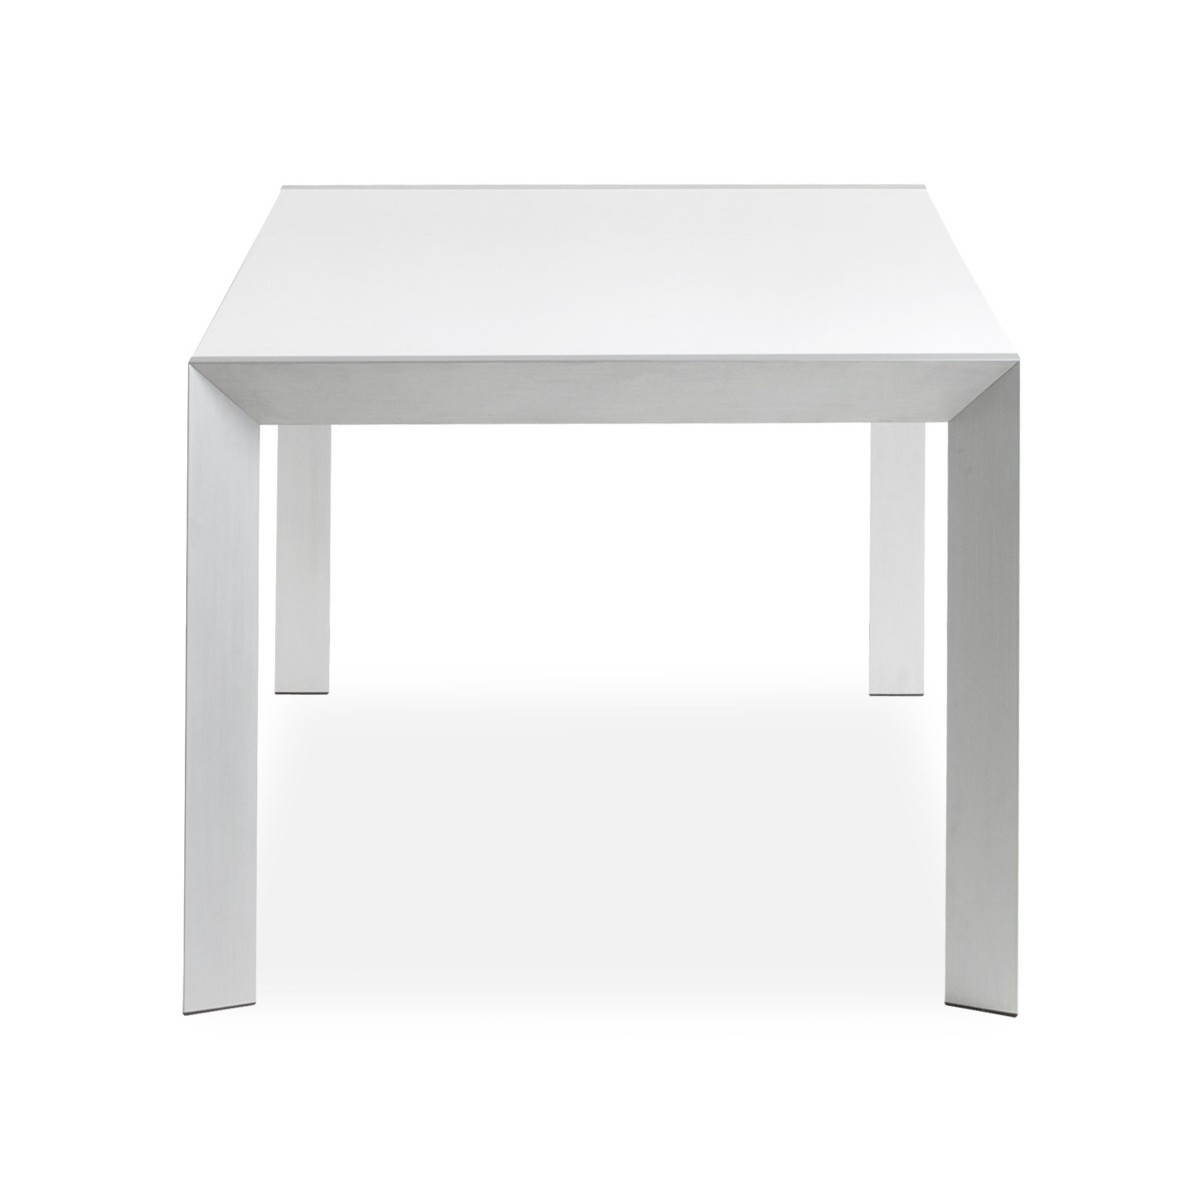 Table design rectangulaire avec rallonge fiona en bois laqu et aluminium bro - Table bar blanc laque ...